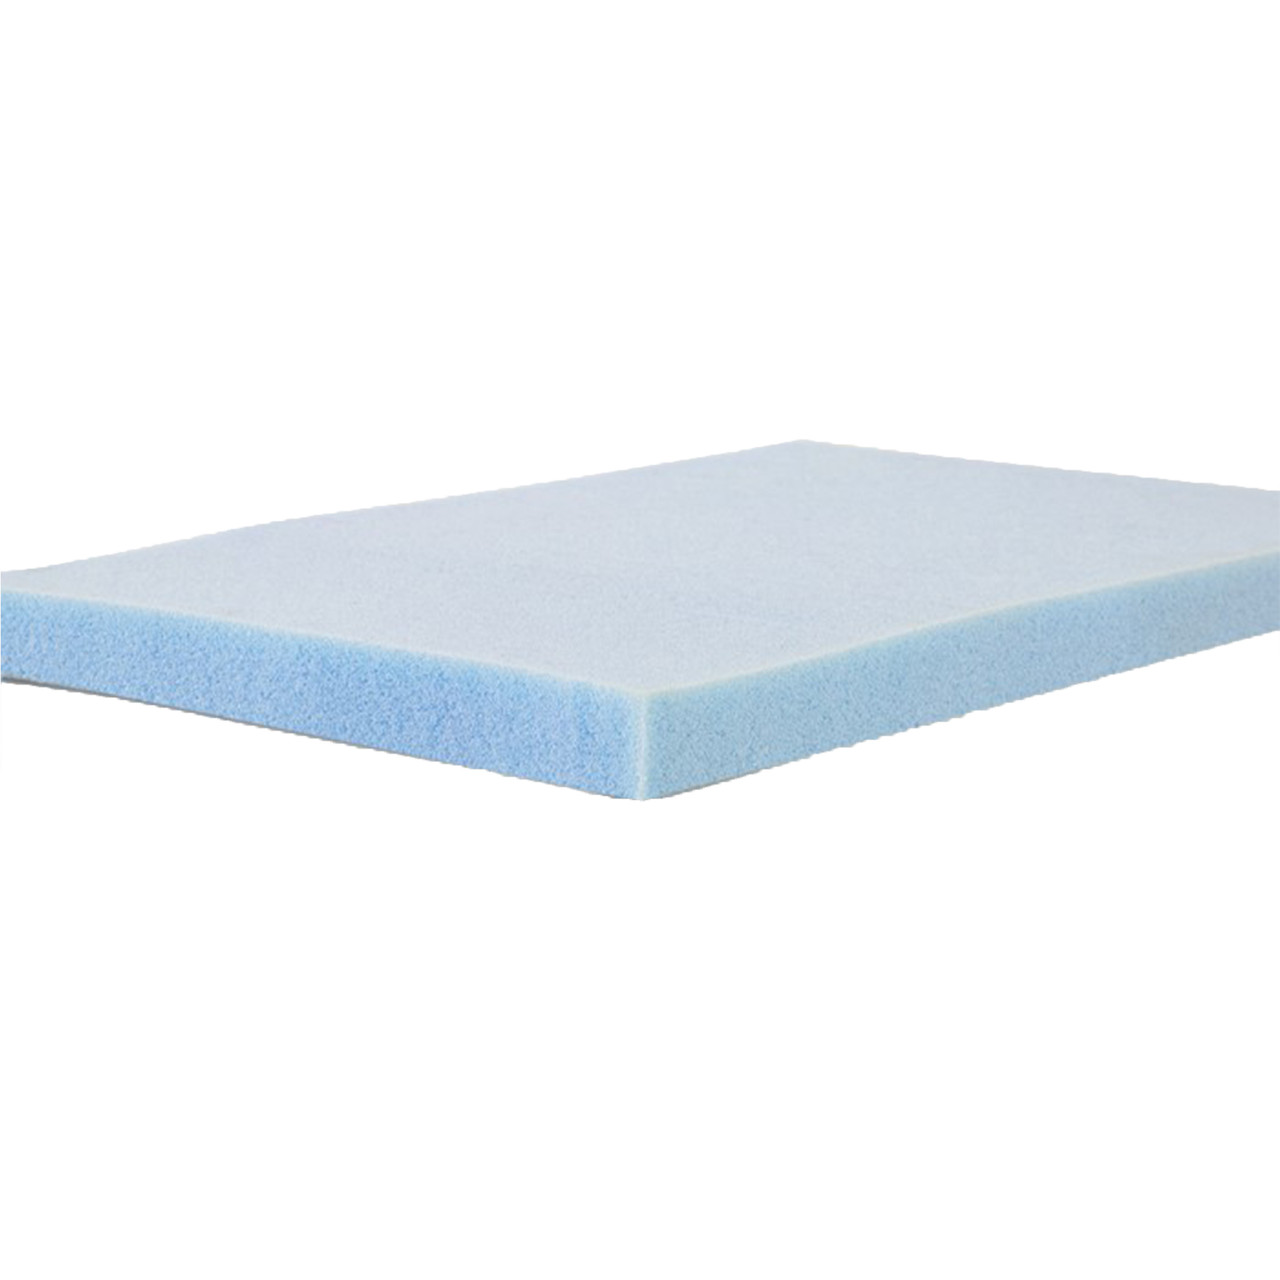 Sqaure foam pads for your  Upholstery, Cushion Pads, Seating, Sofa's, Patio Furniture